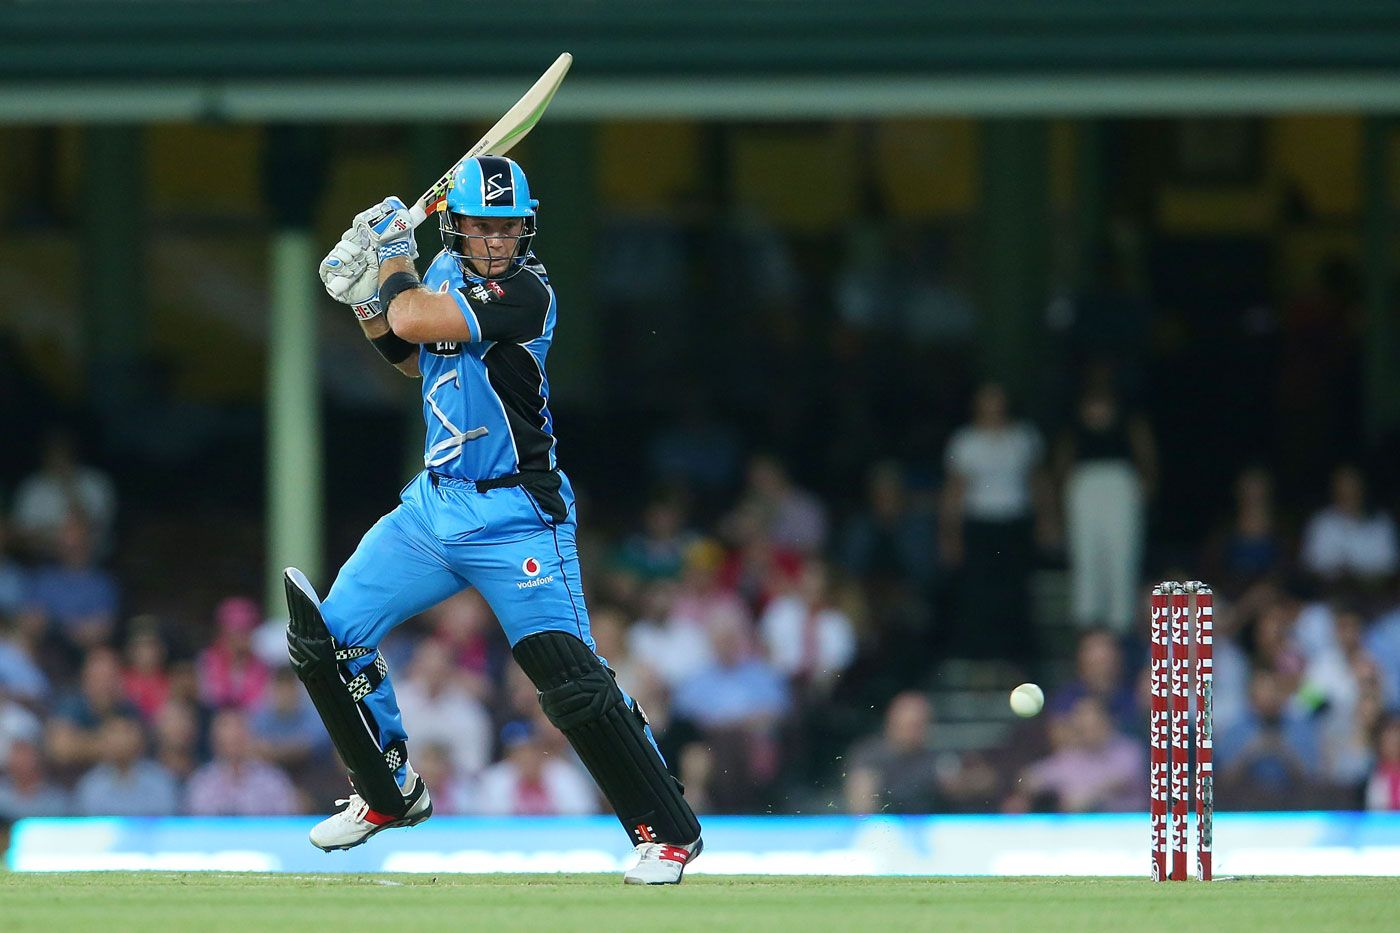 Colin Ingram has taken his skills on the road, from league to league.